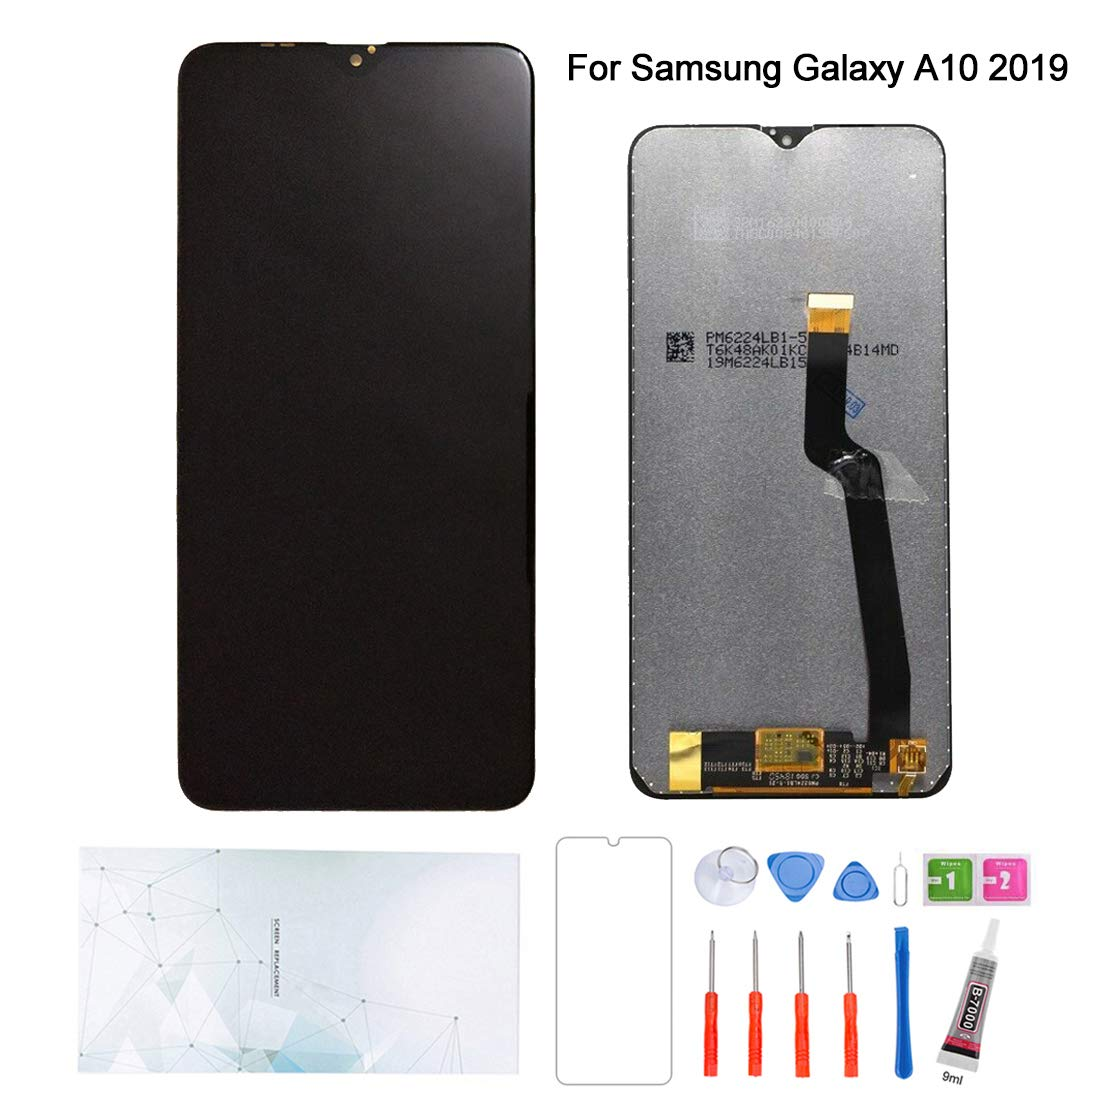 Kosuroum Screen Replacement for Samsung Galaxy A10 (2019) SM-A105F SM-A105G SM-A105M 6.2'' LCD Display Touch Digitizer Assembly Tools (Black) by Kosuroum